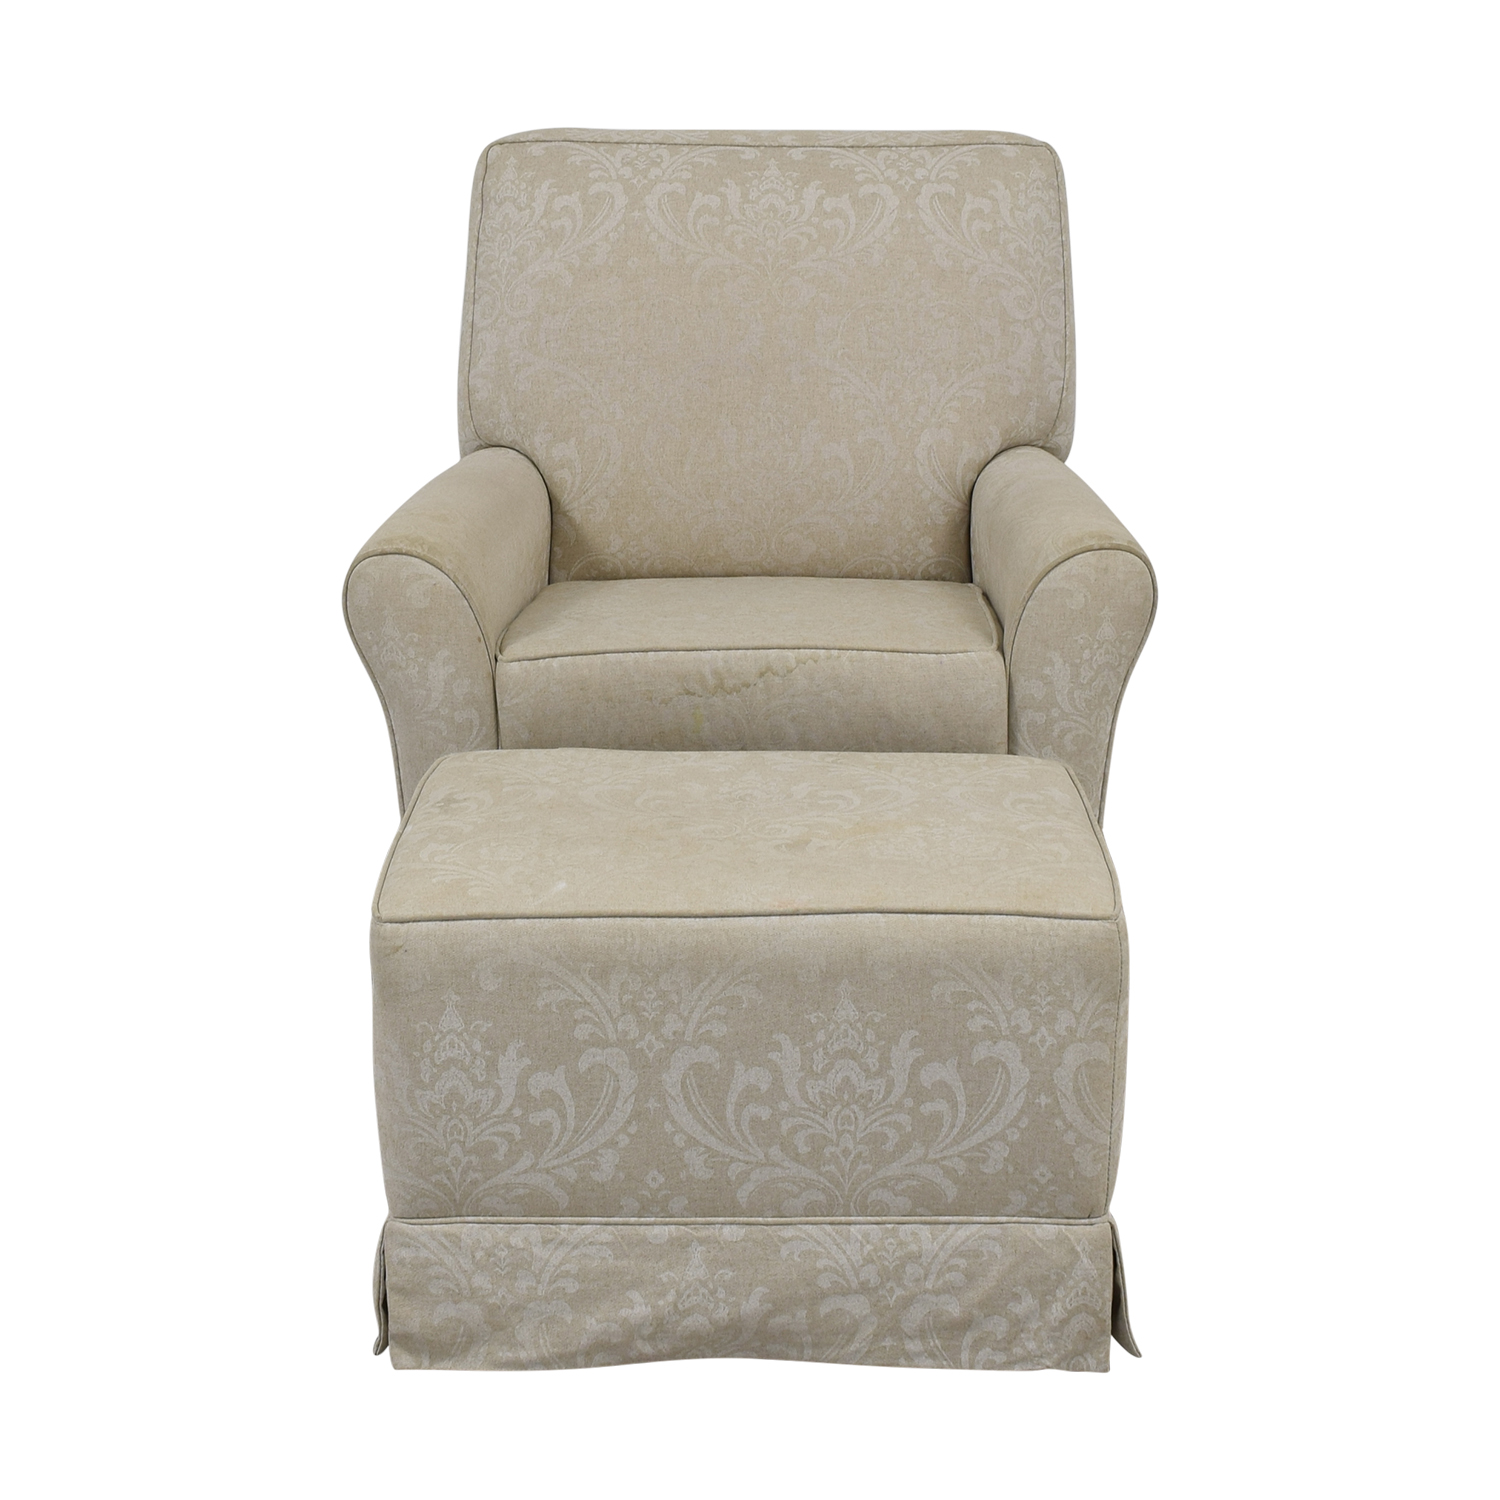 Slipcover Glider Chair and Ottoman on sale